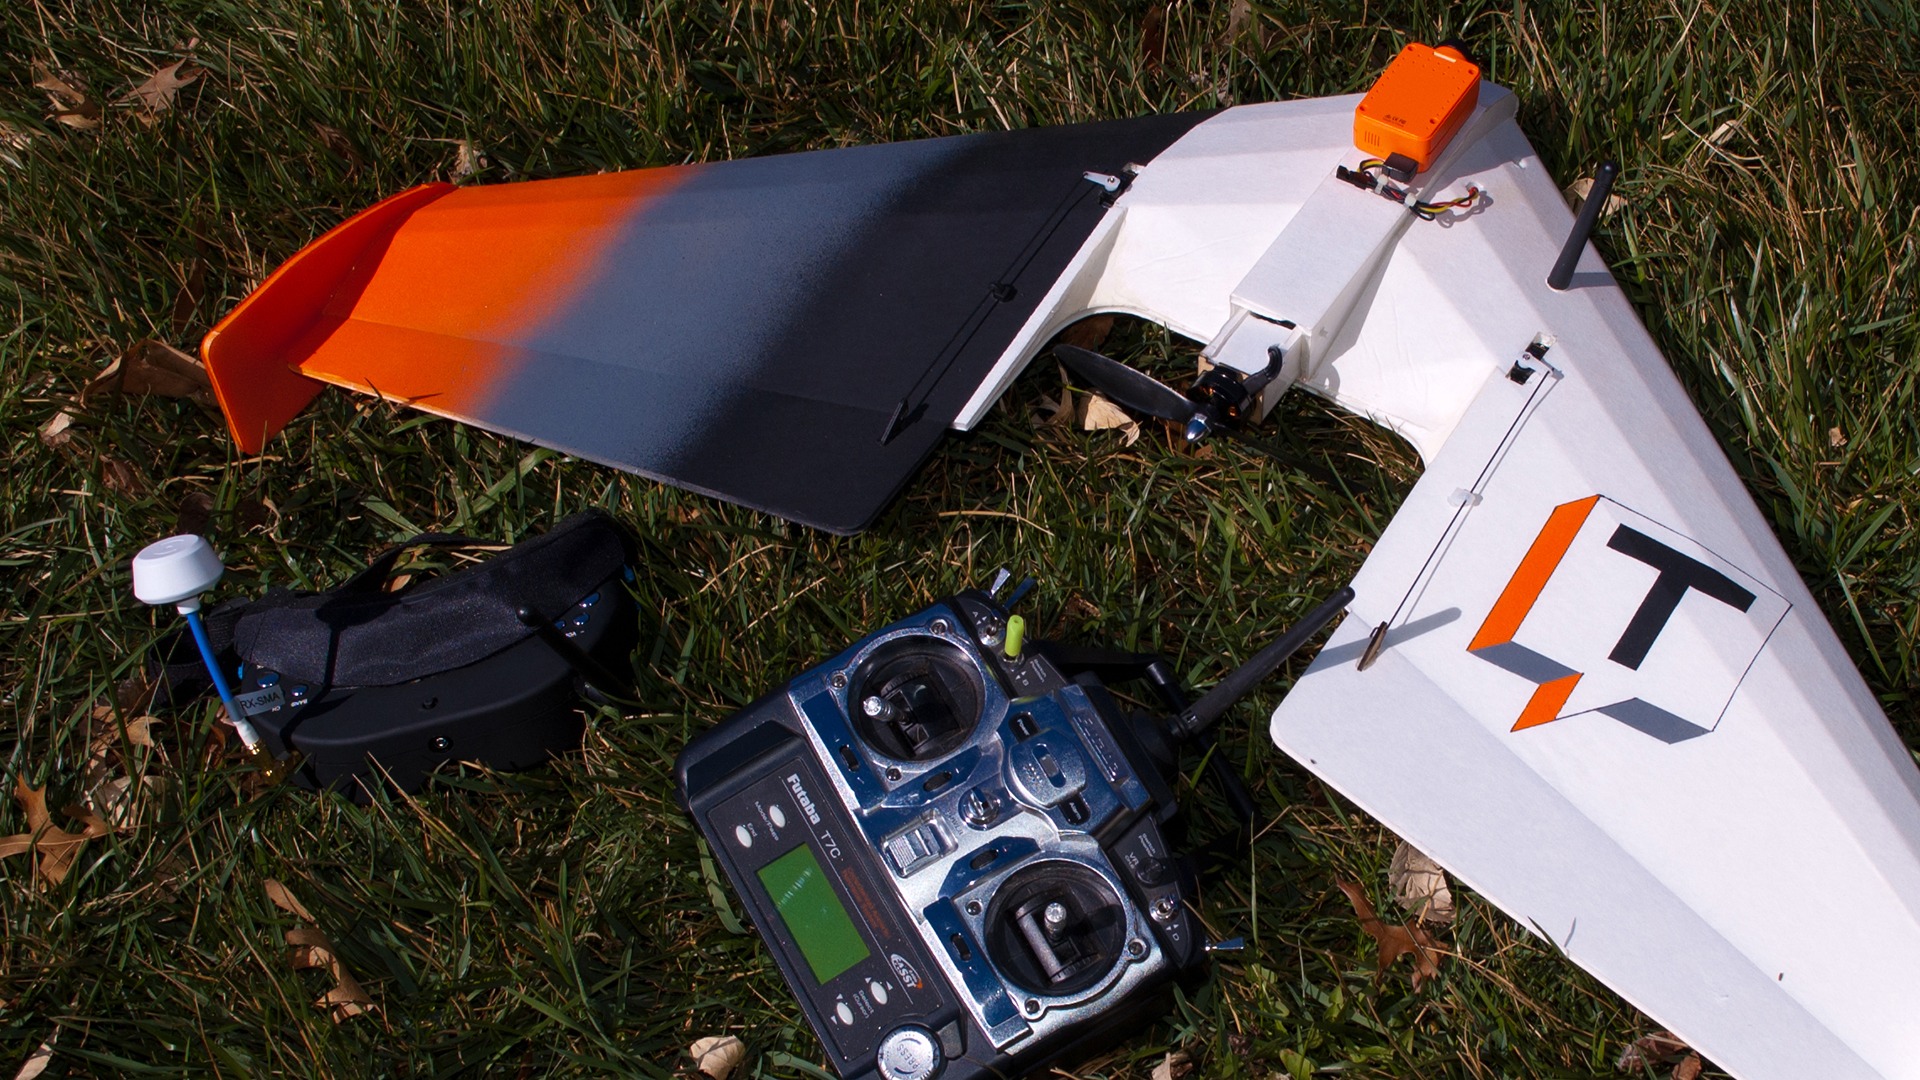 Tbuilding An Fpv Racing Wing Tested